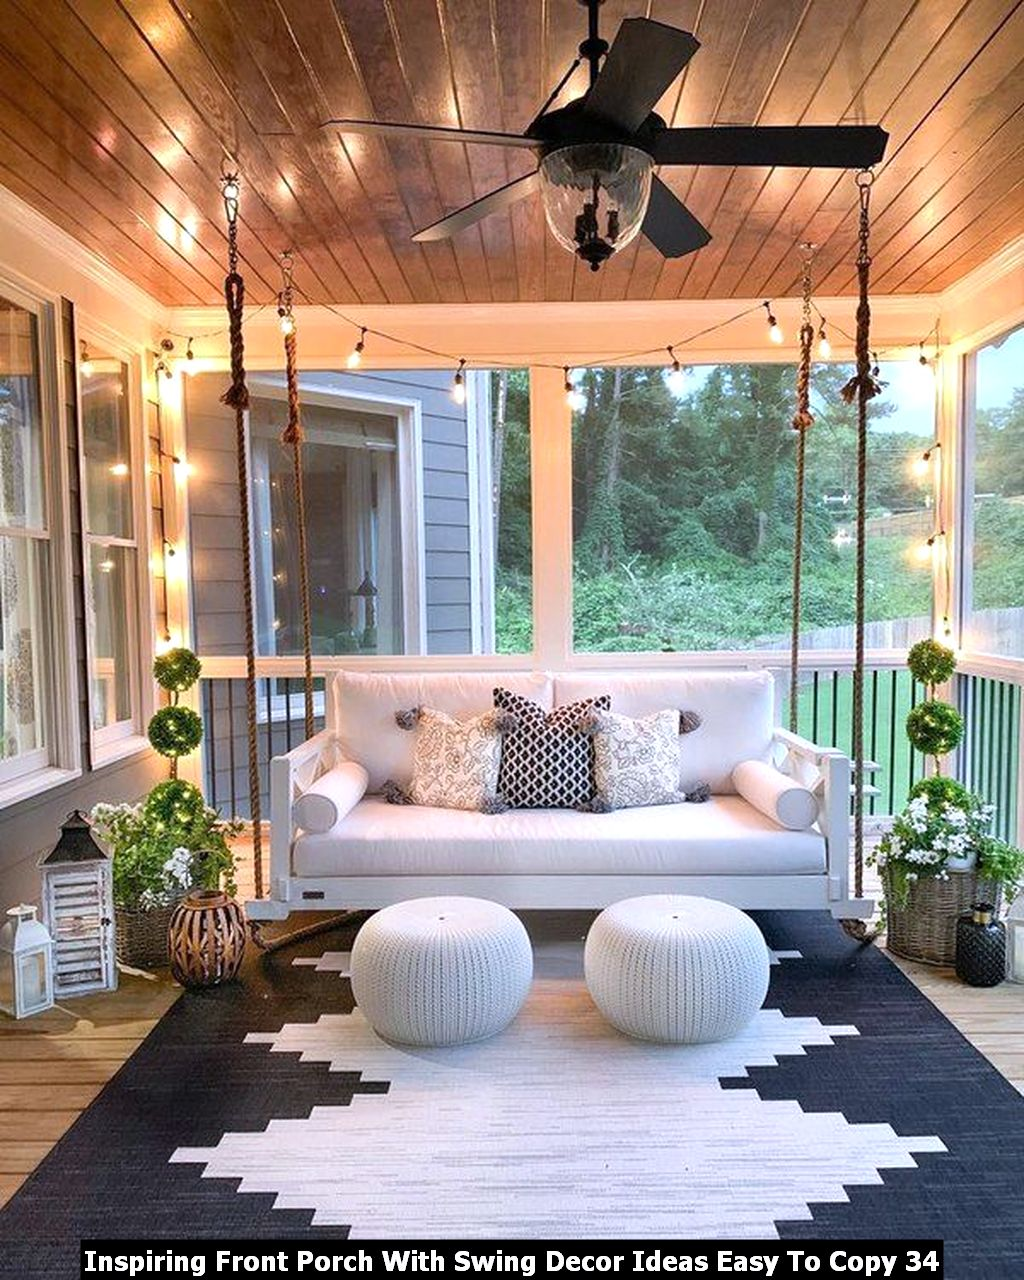 Inspiring Front Porch With Swing Decor Ideas Easy To Copy 34